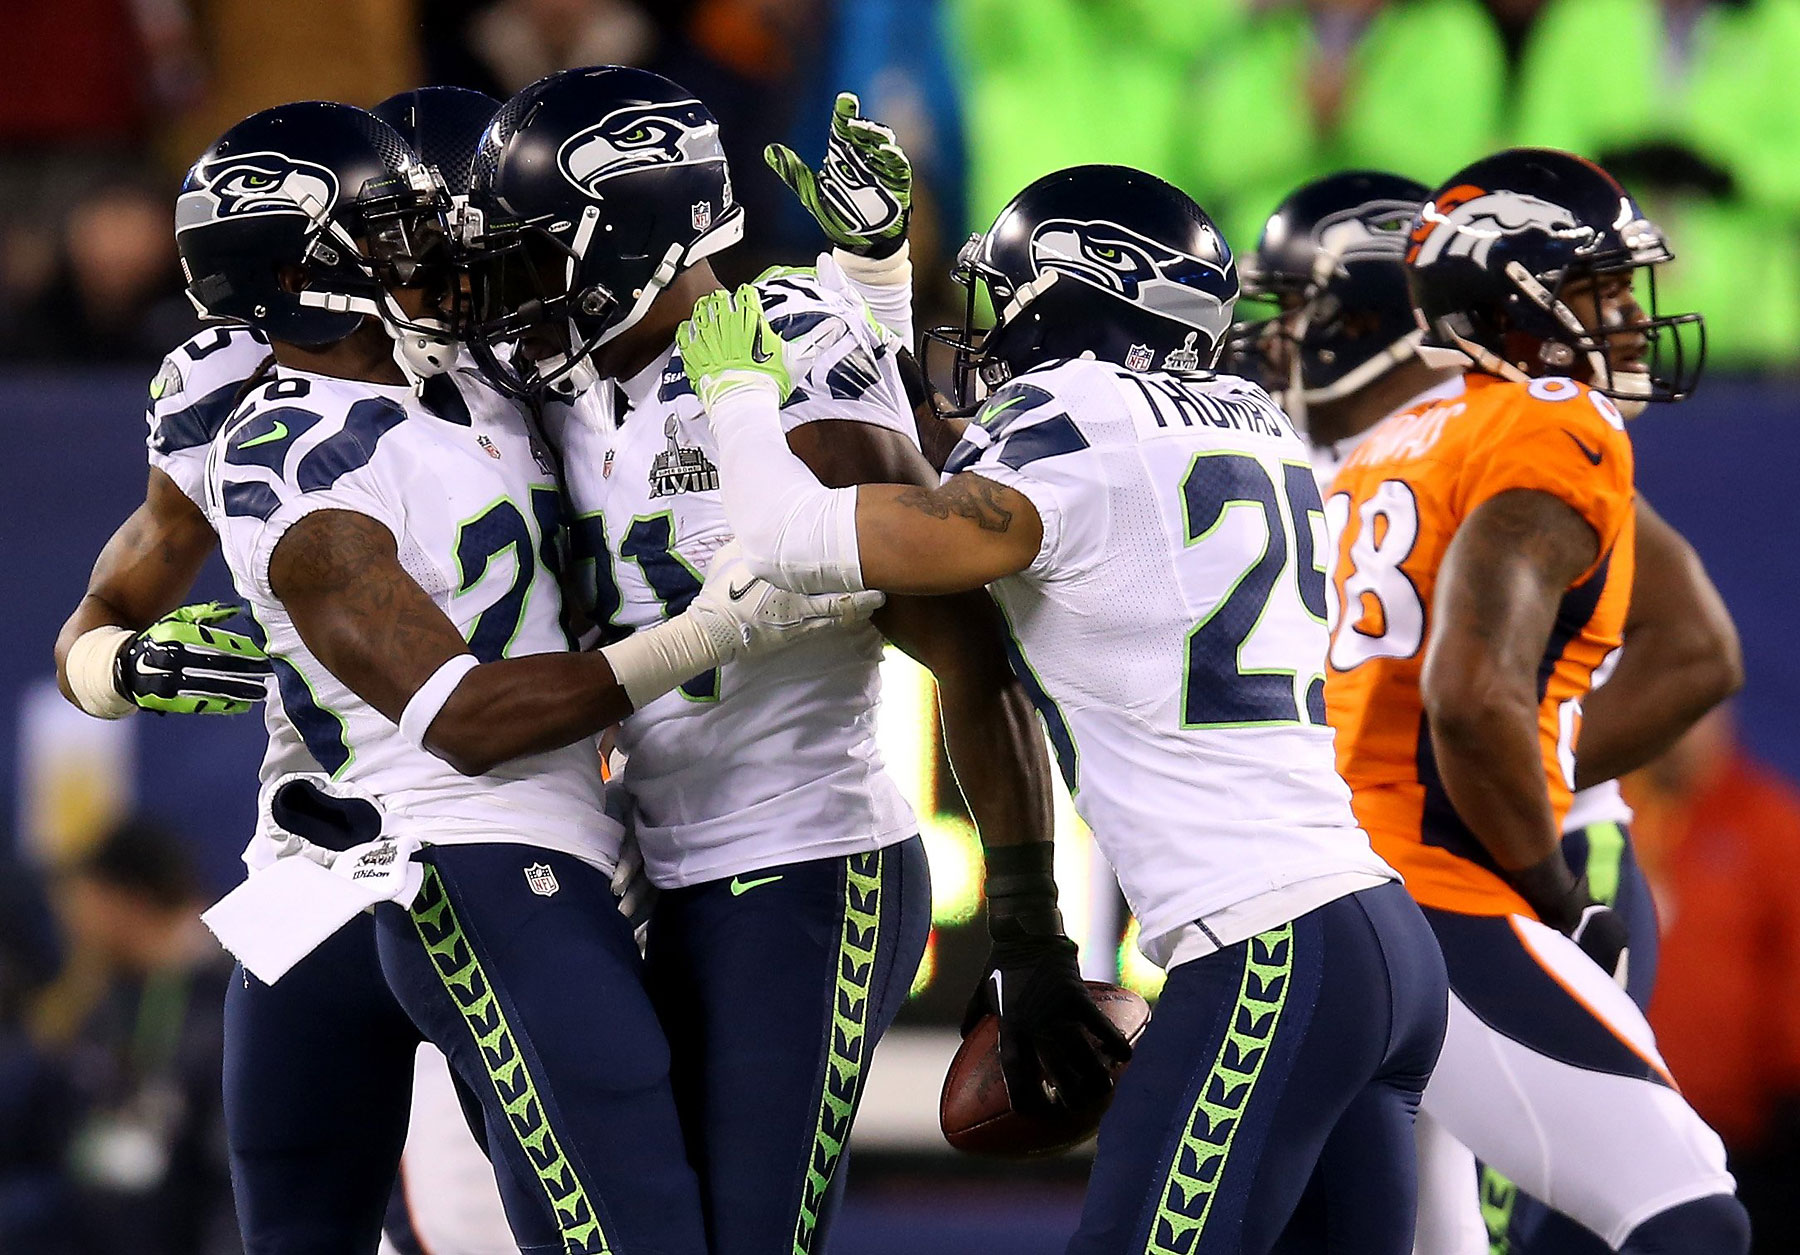 Strong safety Kam Chancellor of the Seattle Seahawks celebrates his interception with teammates against the Denver Broncos in the first quarter.